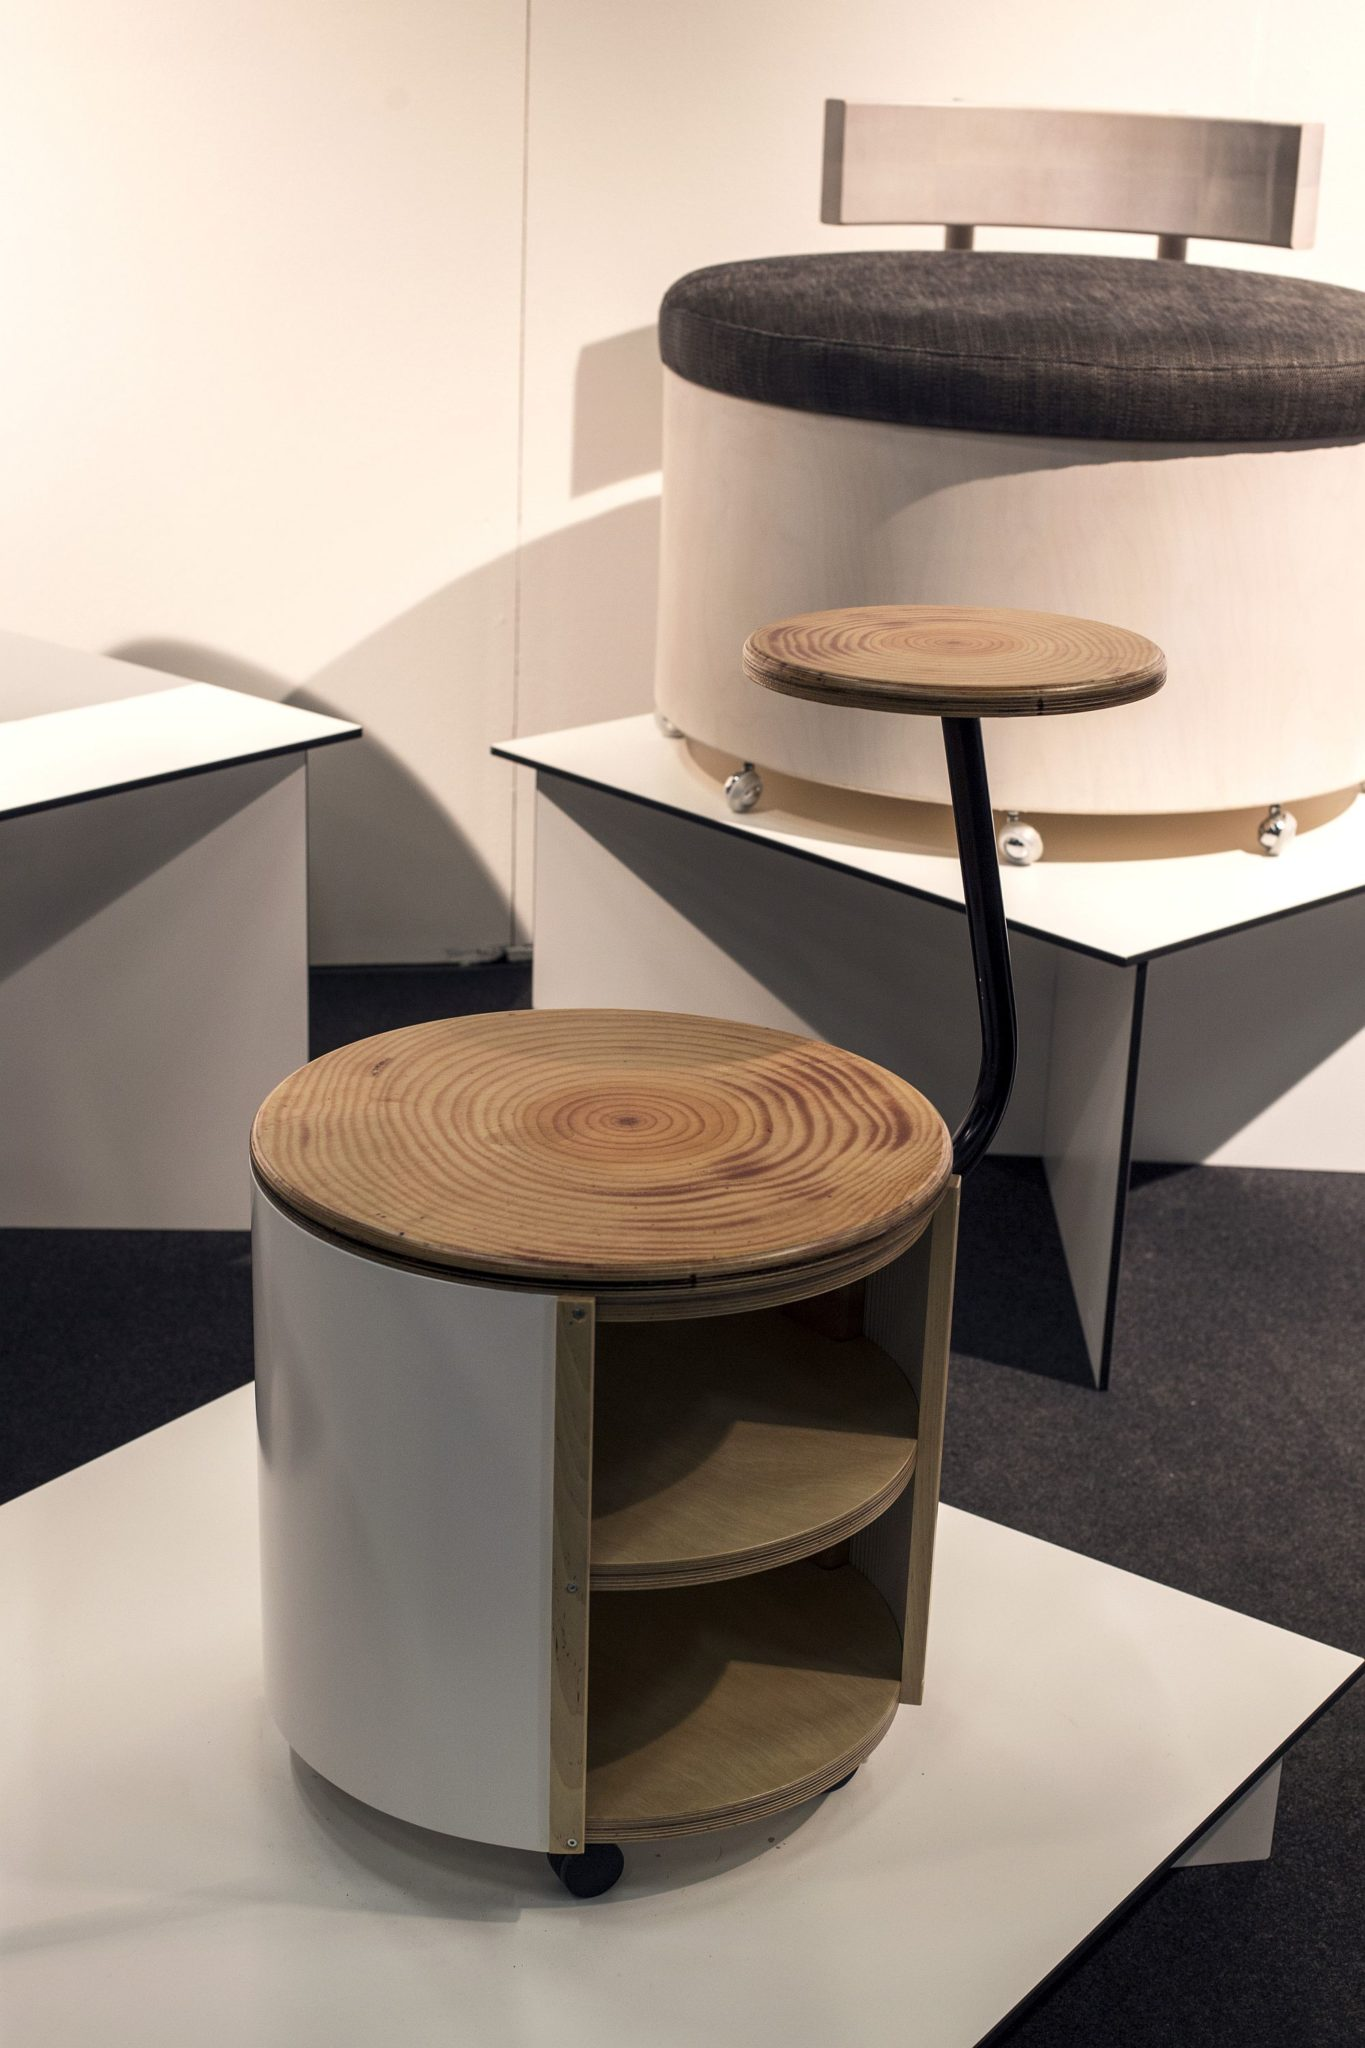 Modular bedside tables on wheels from Design Rookie